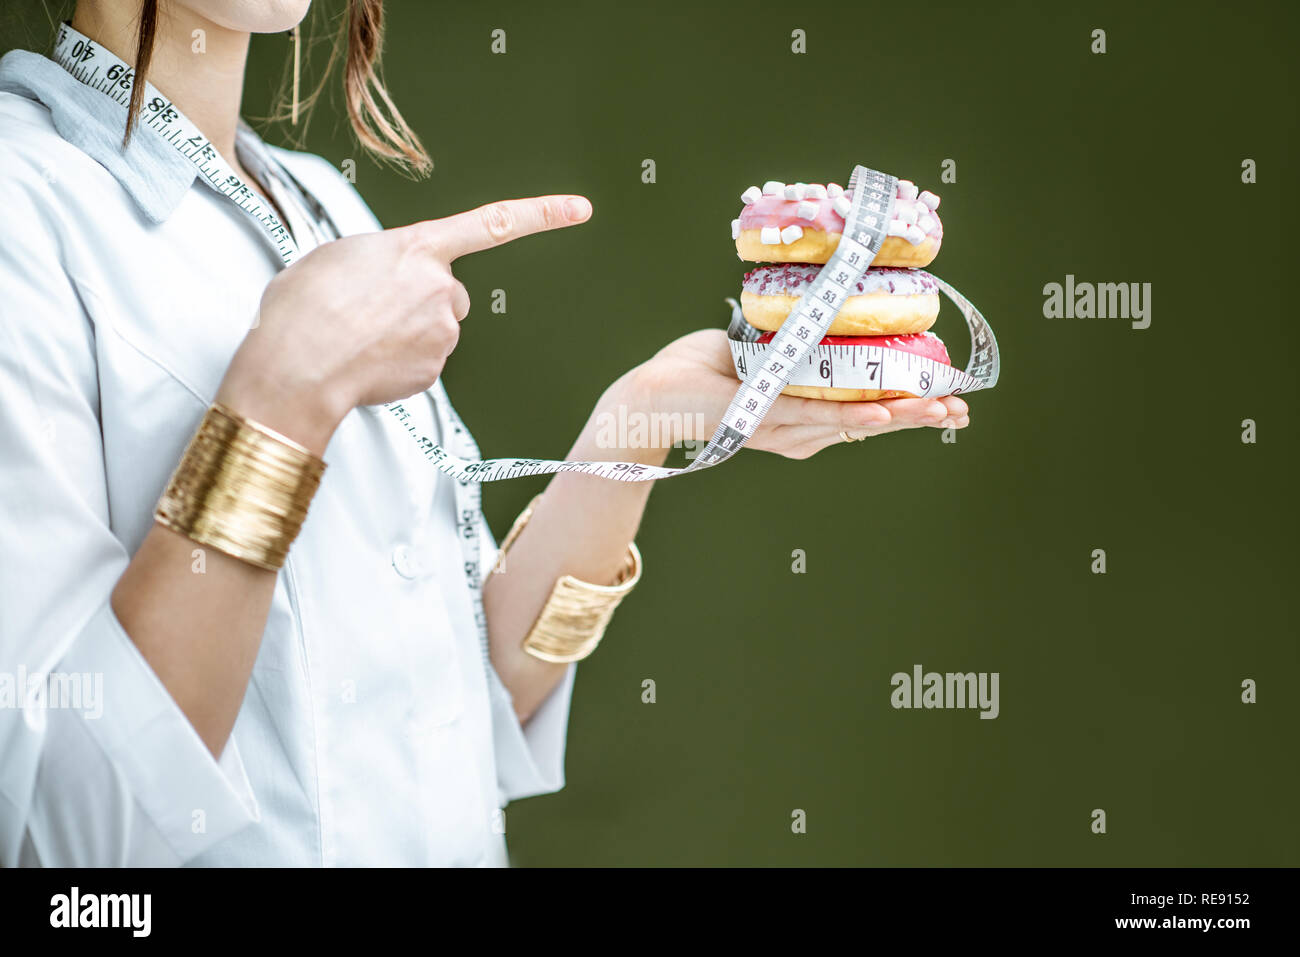 Woman showing on the sweet donuts on the green background. Unhealthy eating and adiposity concept - Stock Image